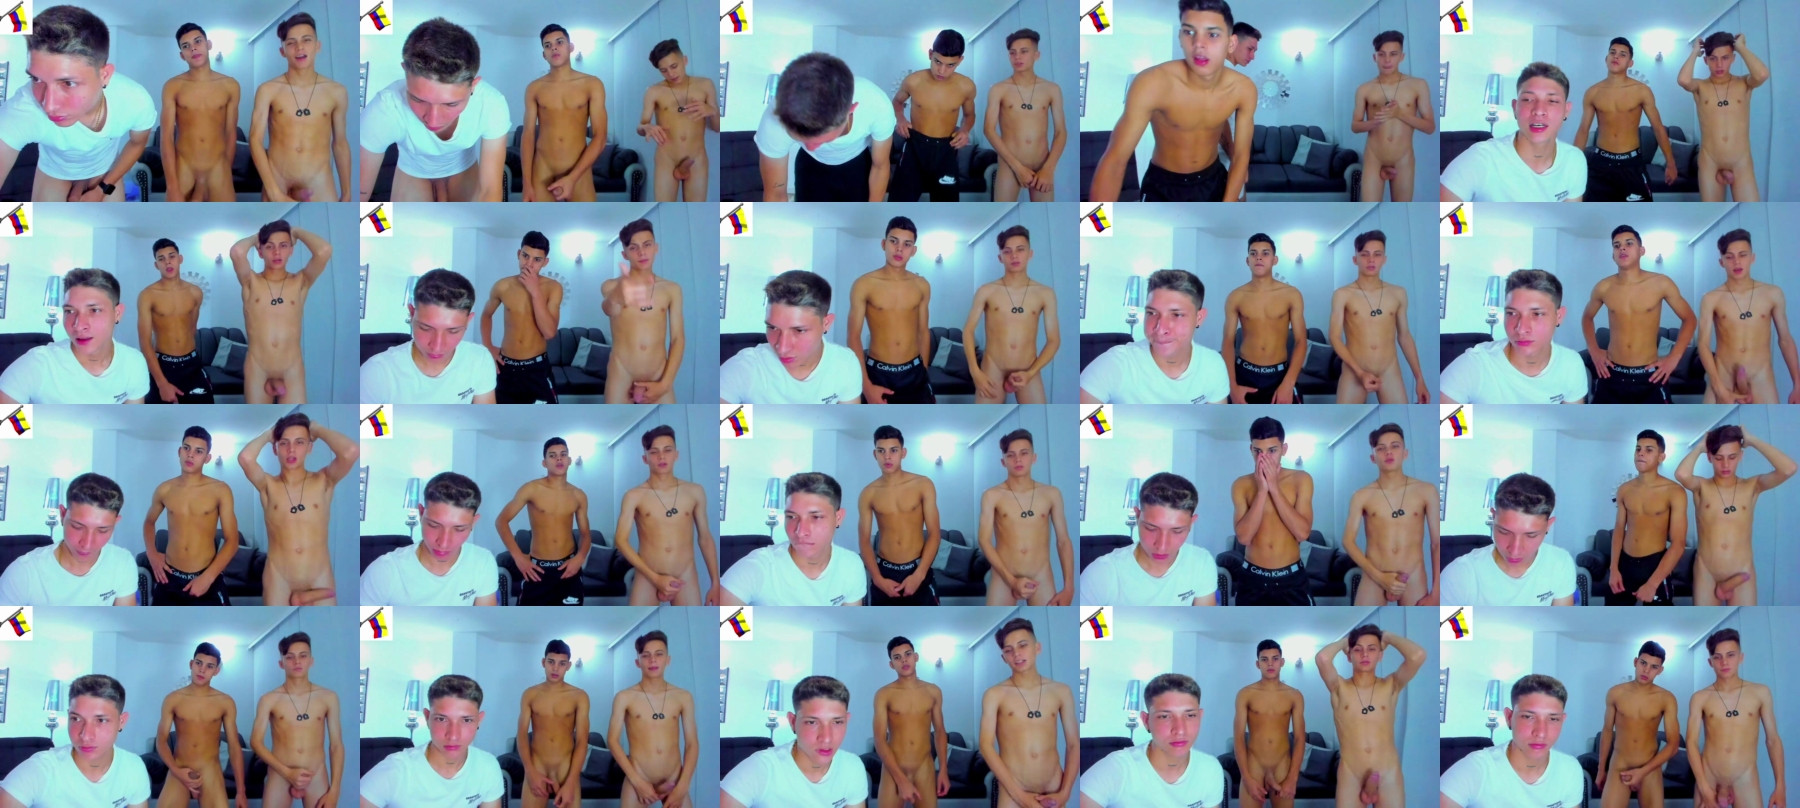 Handsomes_Boys Chaturbate 15-05-2021 Male Video